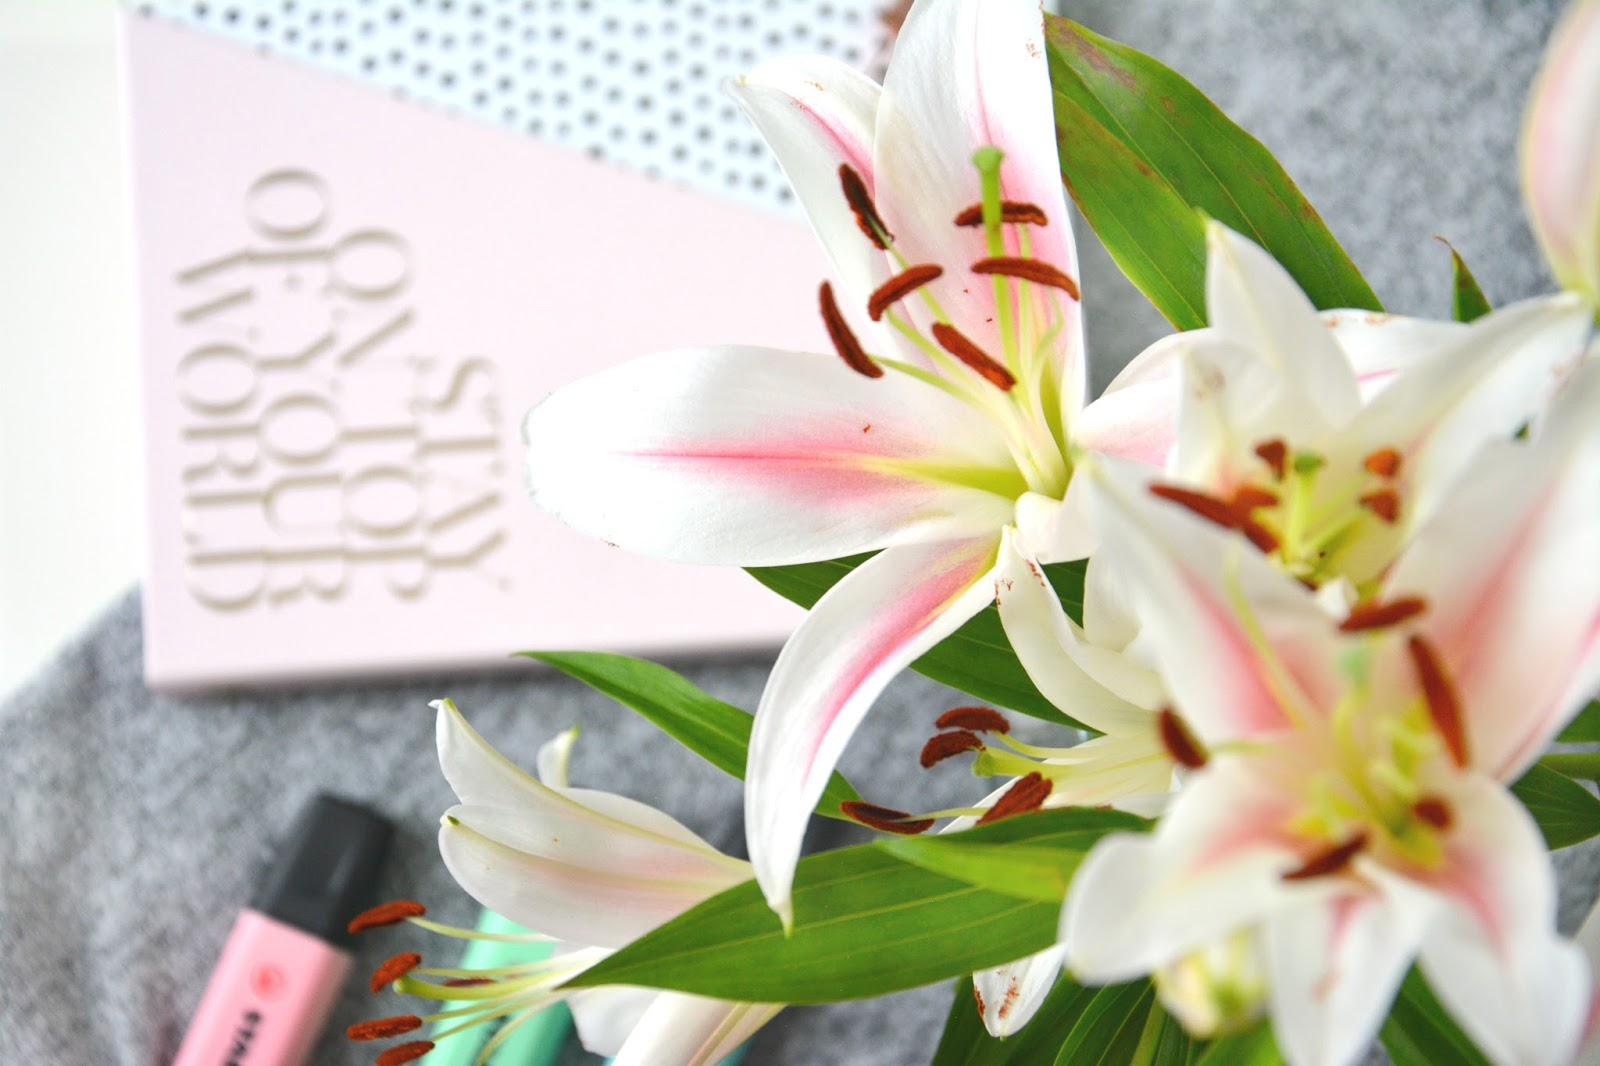 Zoella Stationary Book; Stabilo Pastel Highlighters; Fresh Lilies